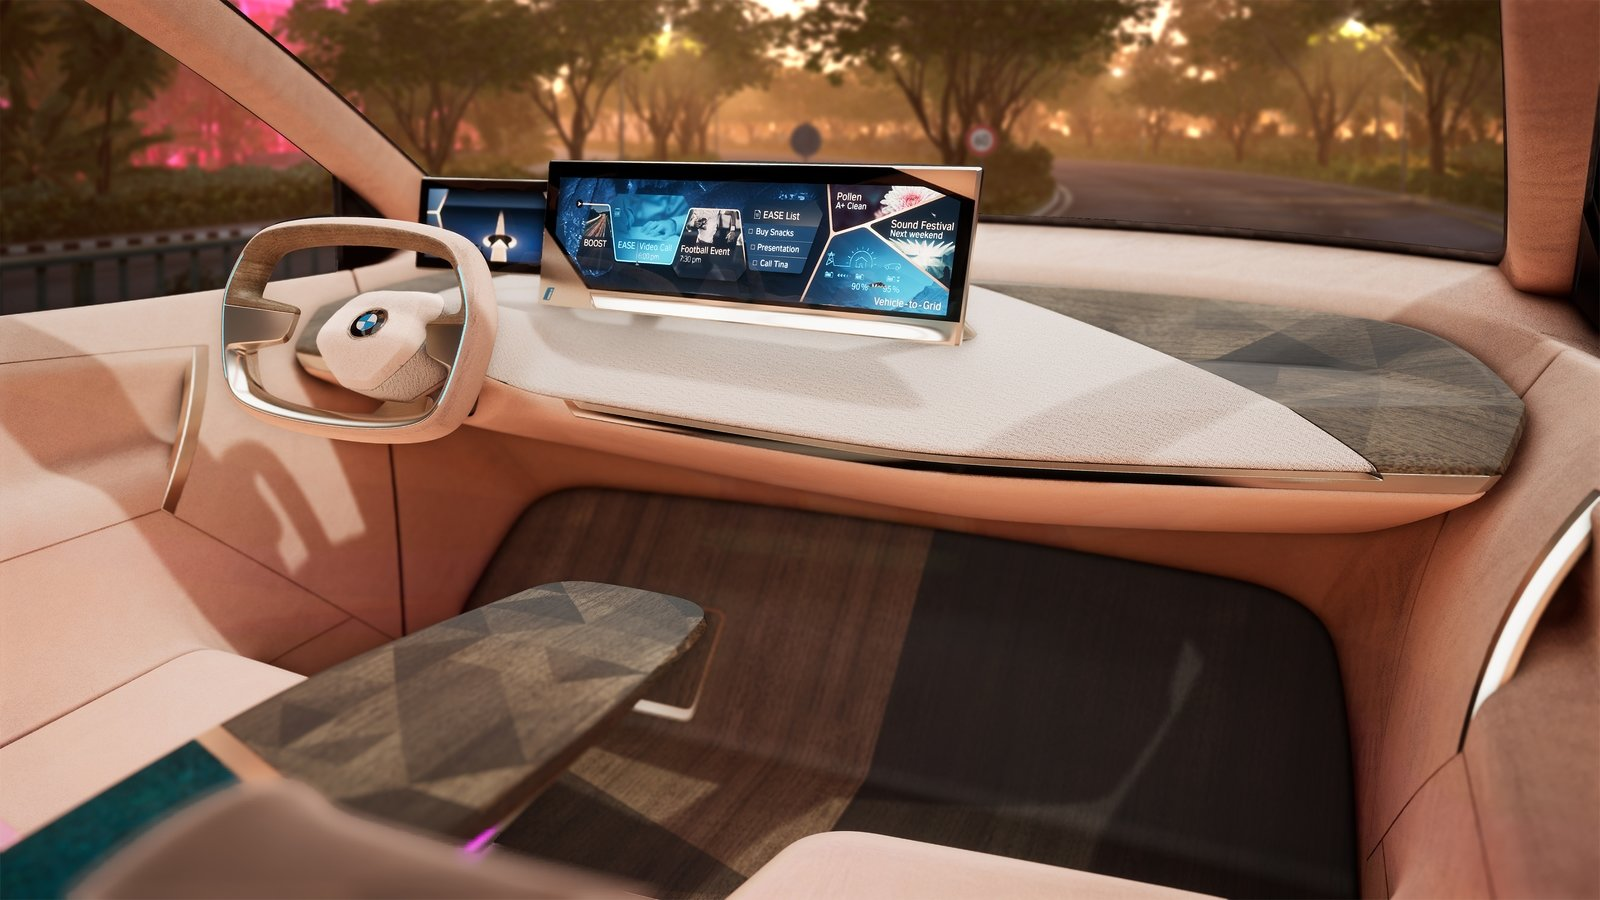 Types Of Suvs >> If You're Going To The 2019 Consumer Electronics Show, BMW Wants To Give You A Virtual Ride In ...